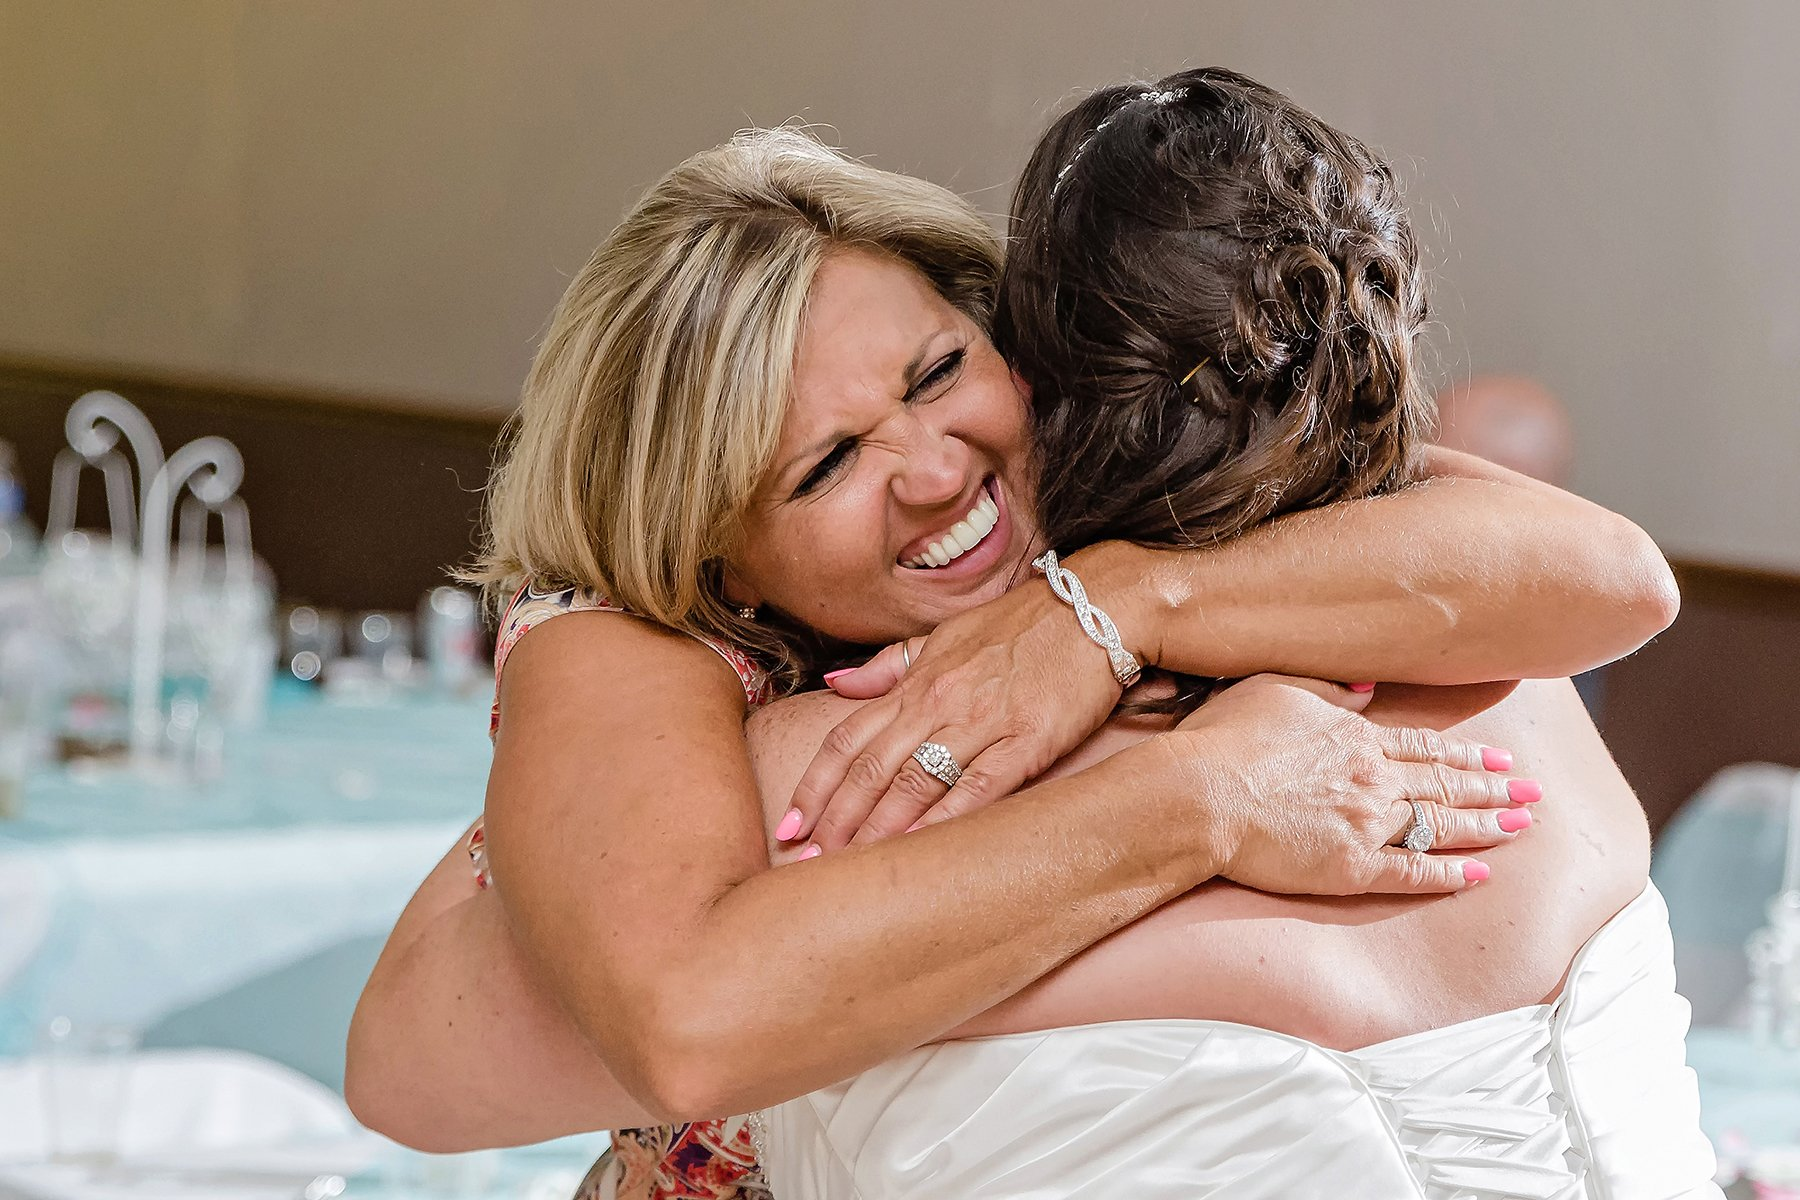 bryantown senior personals Eharmony - leading dating site for seniors eharmony is committed to helping senior men and women find love every day we are confident in our ability to do so.